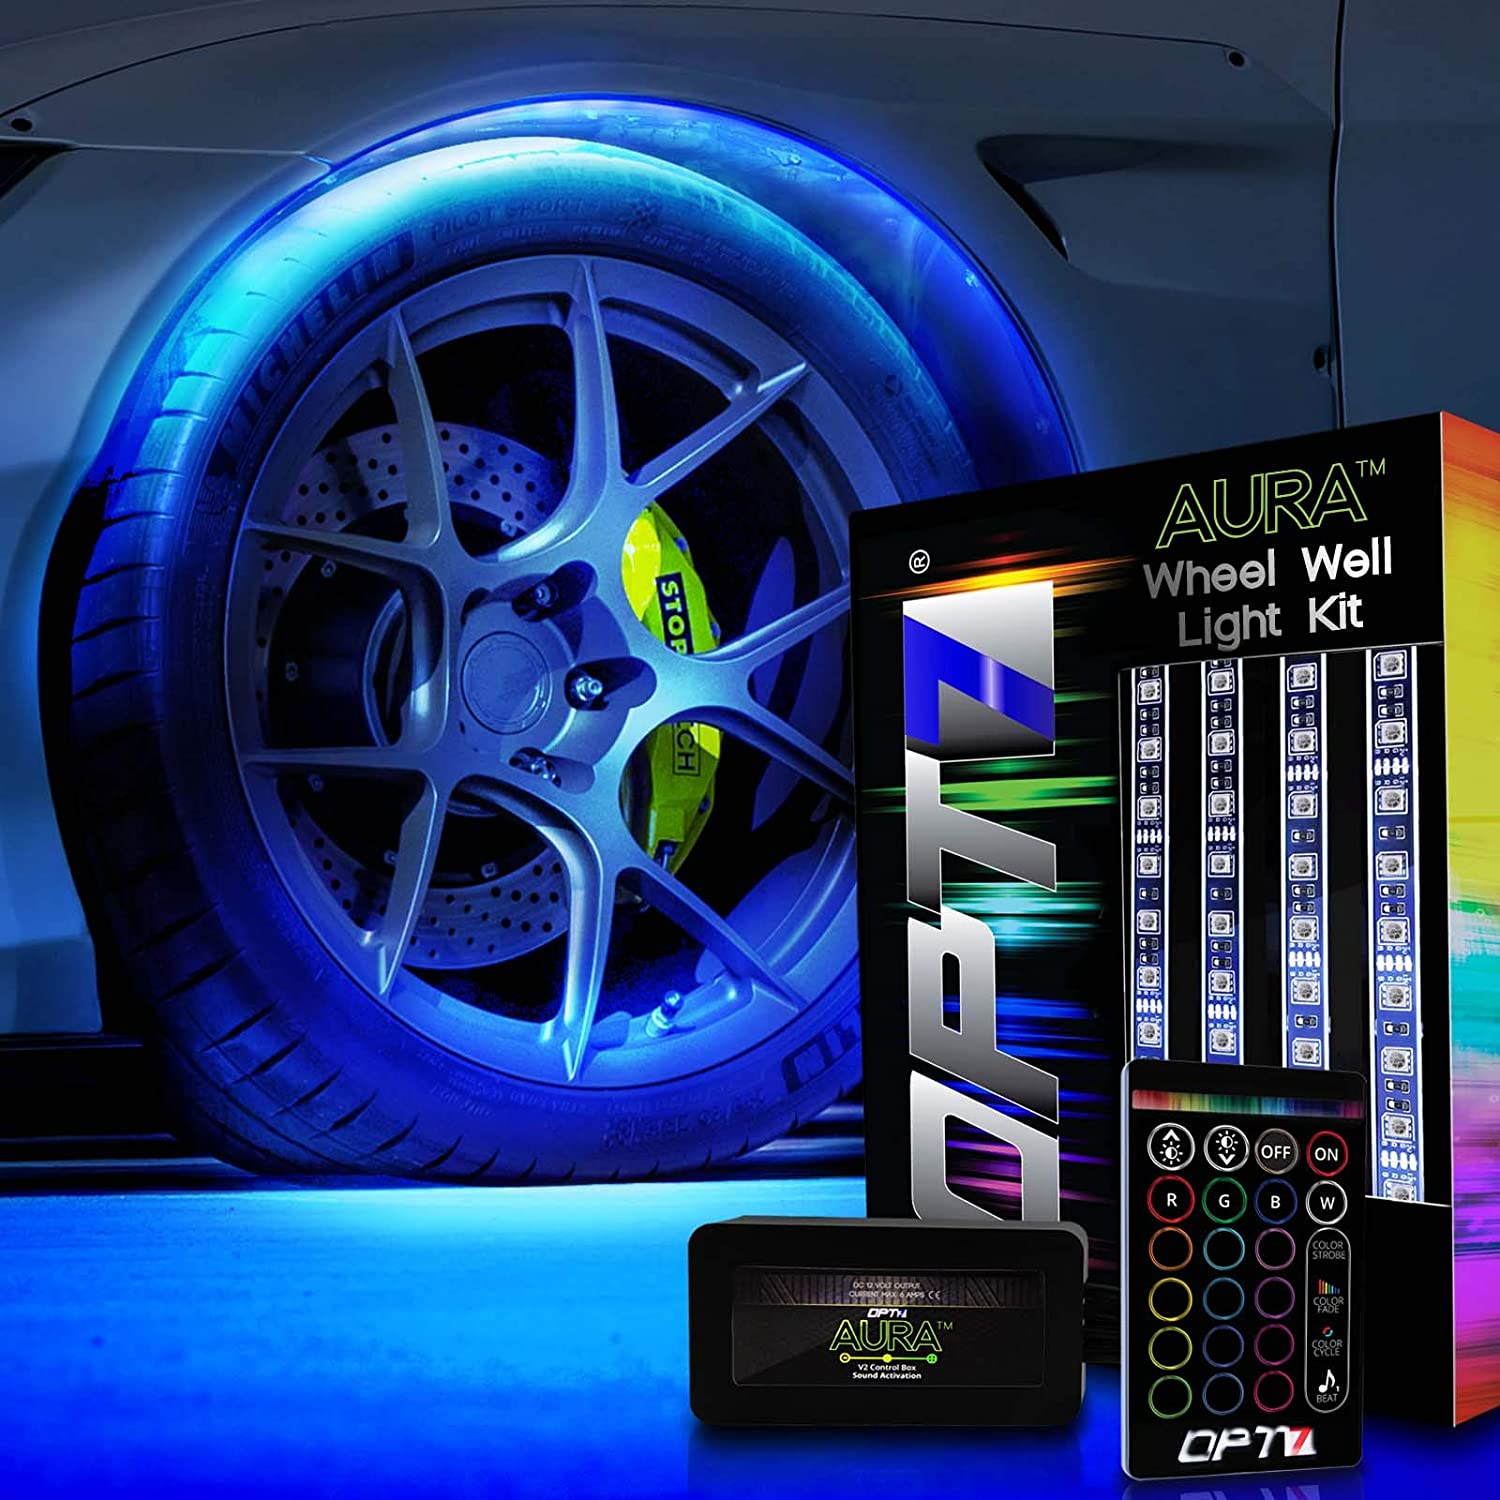 4pc Complete 24 Multi-Colour Strips OPT7 3-Into-1 AuraColor/™ Wheel Well LED Kit